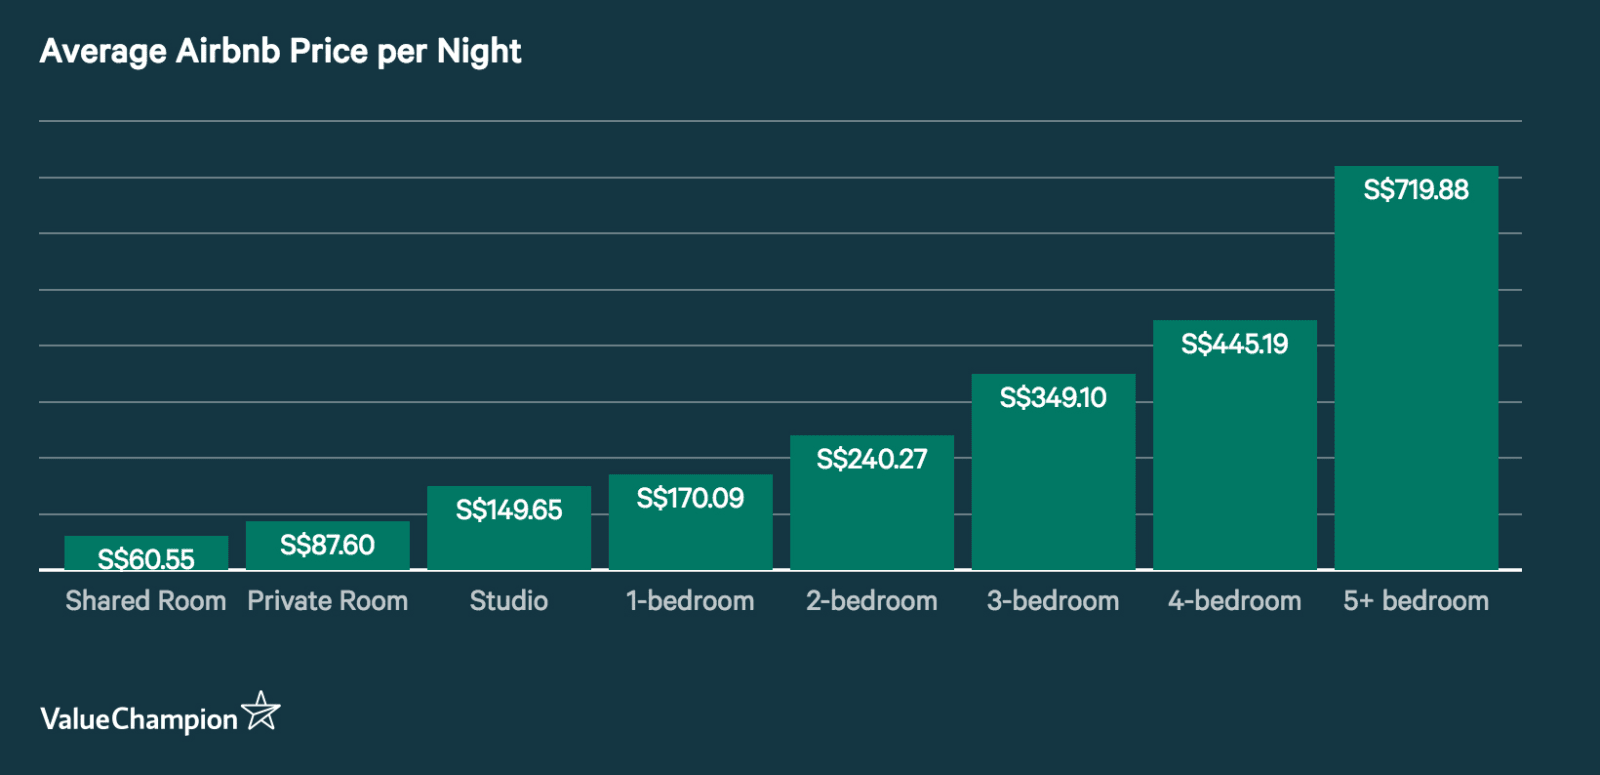 Average Airbnb Price per Night